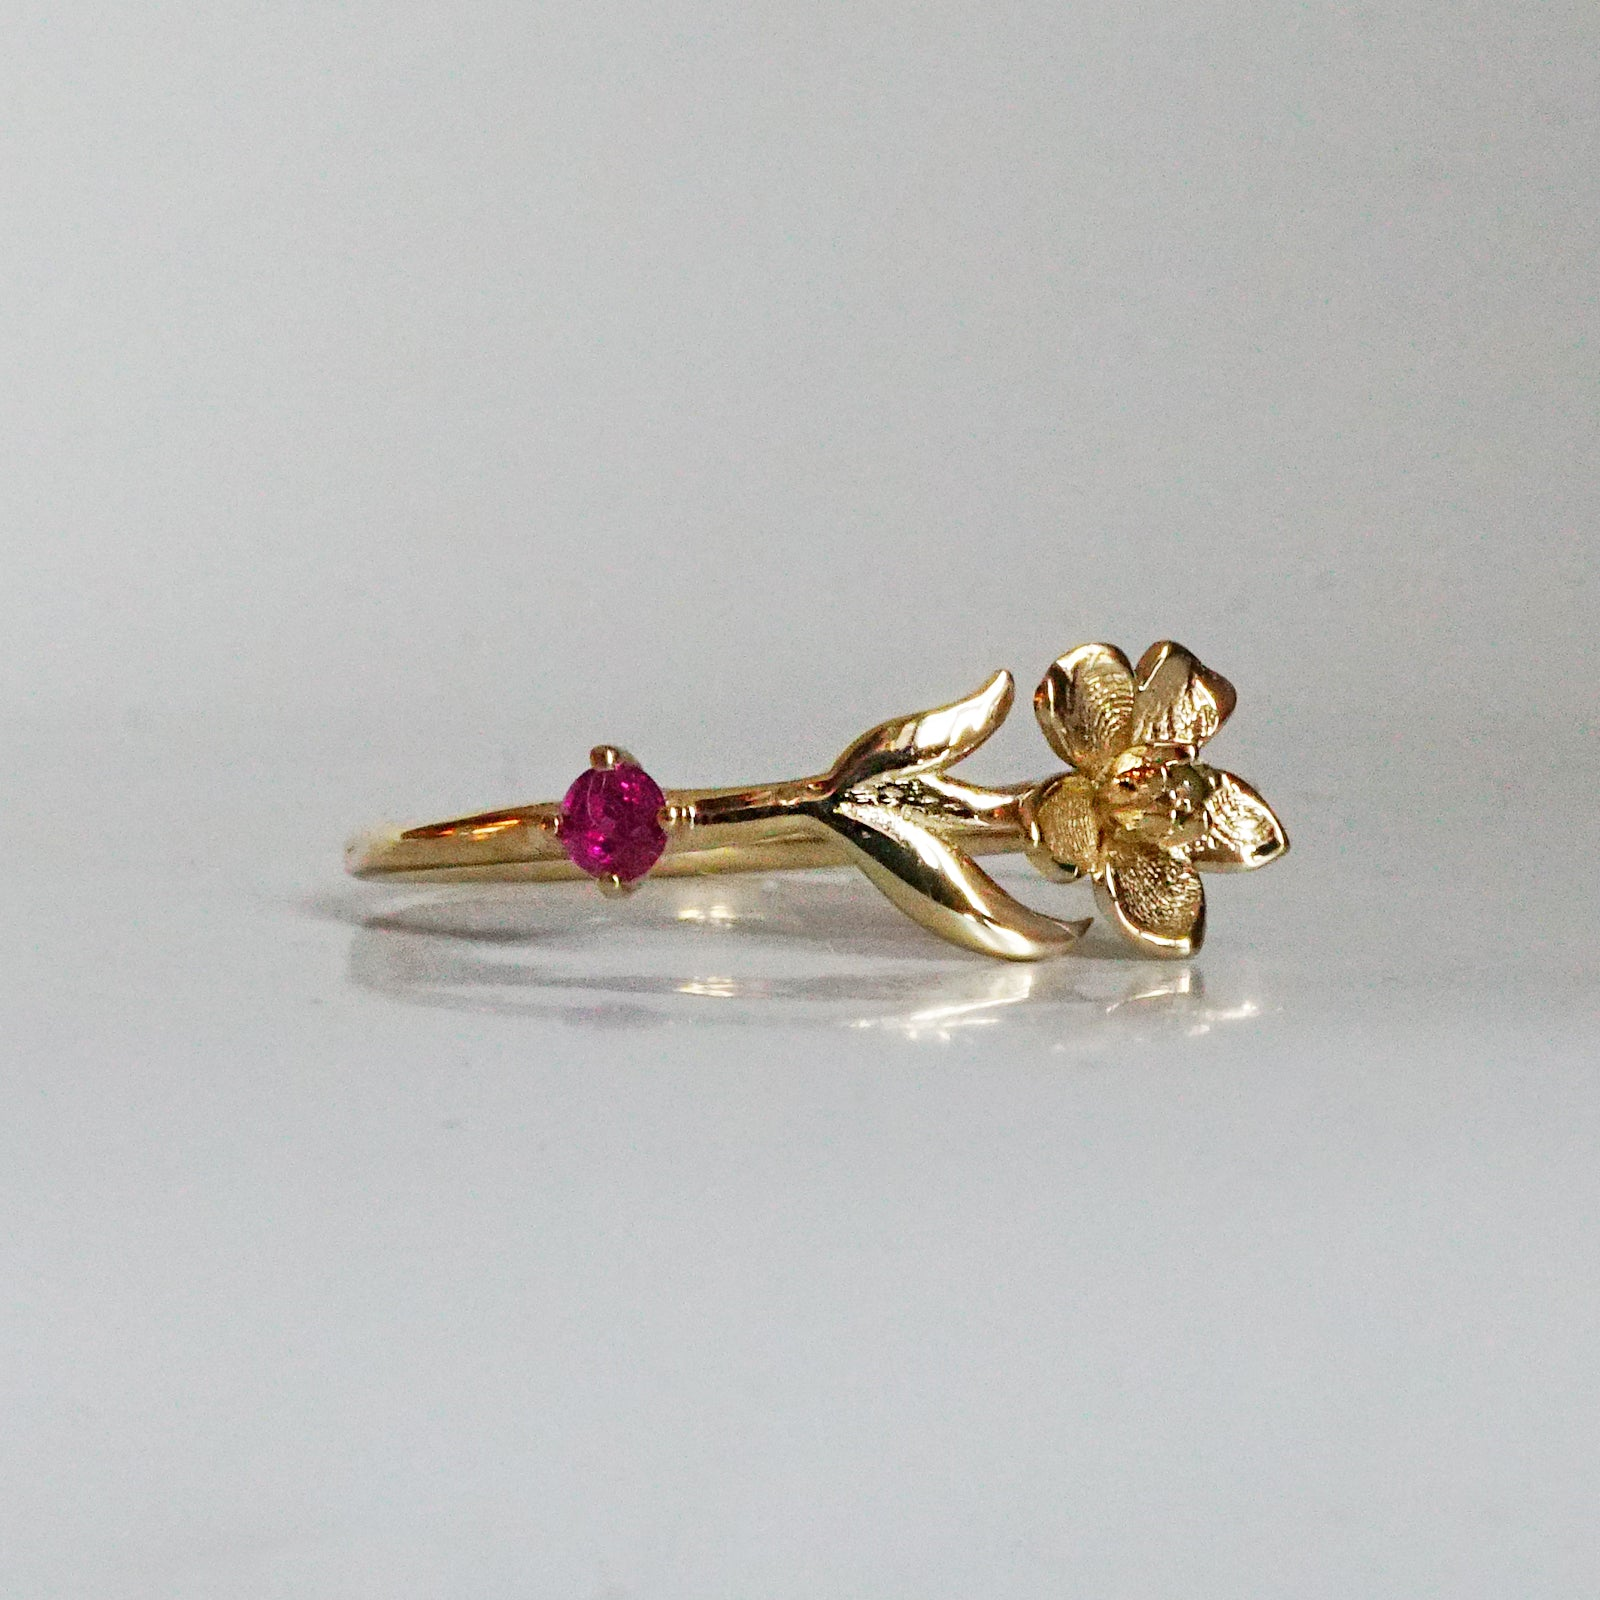 14K July Water Lily Birth Flower Ring